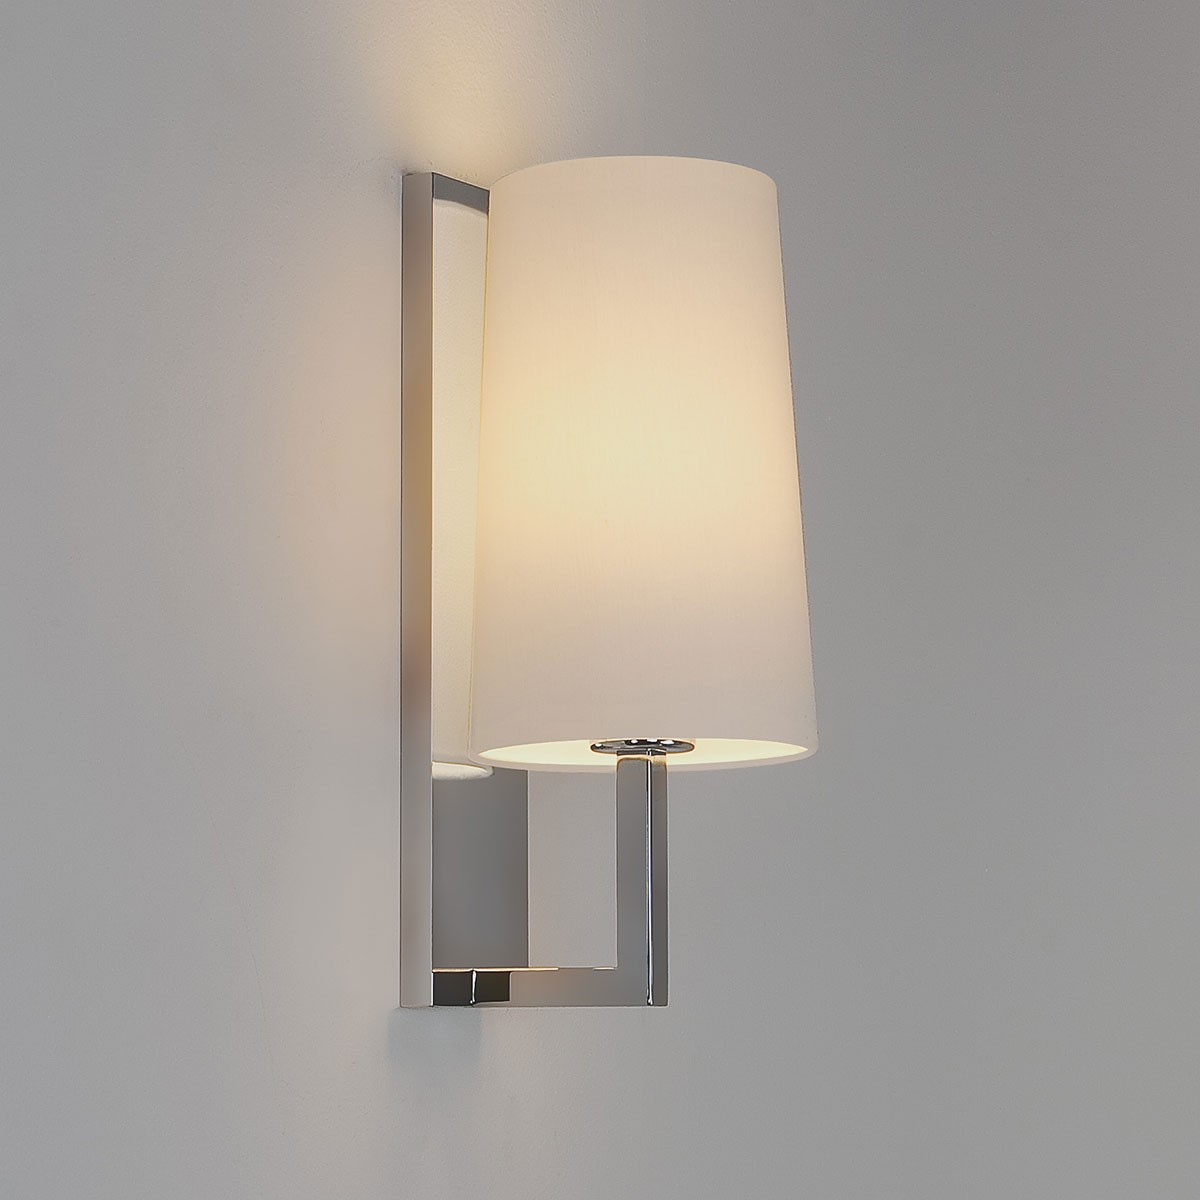 Astro riva 350 polished chrome bathroom wall light at uk for Astro lighting